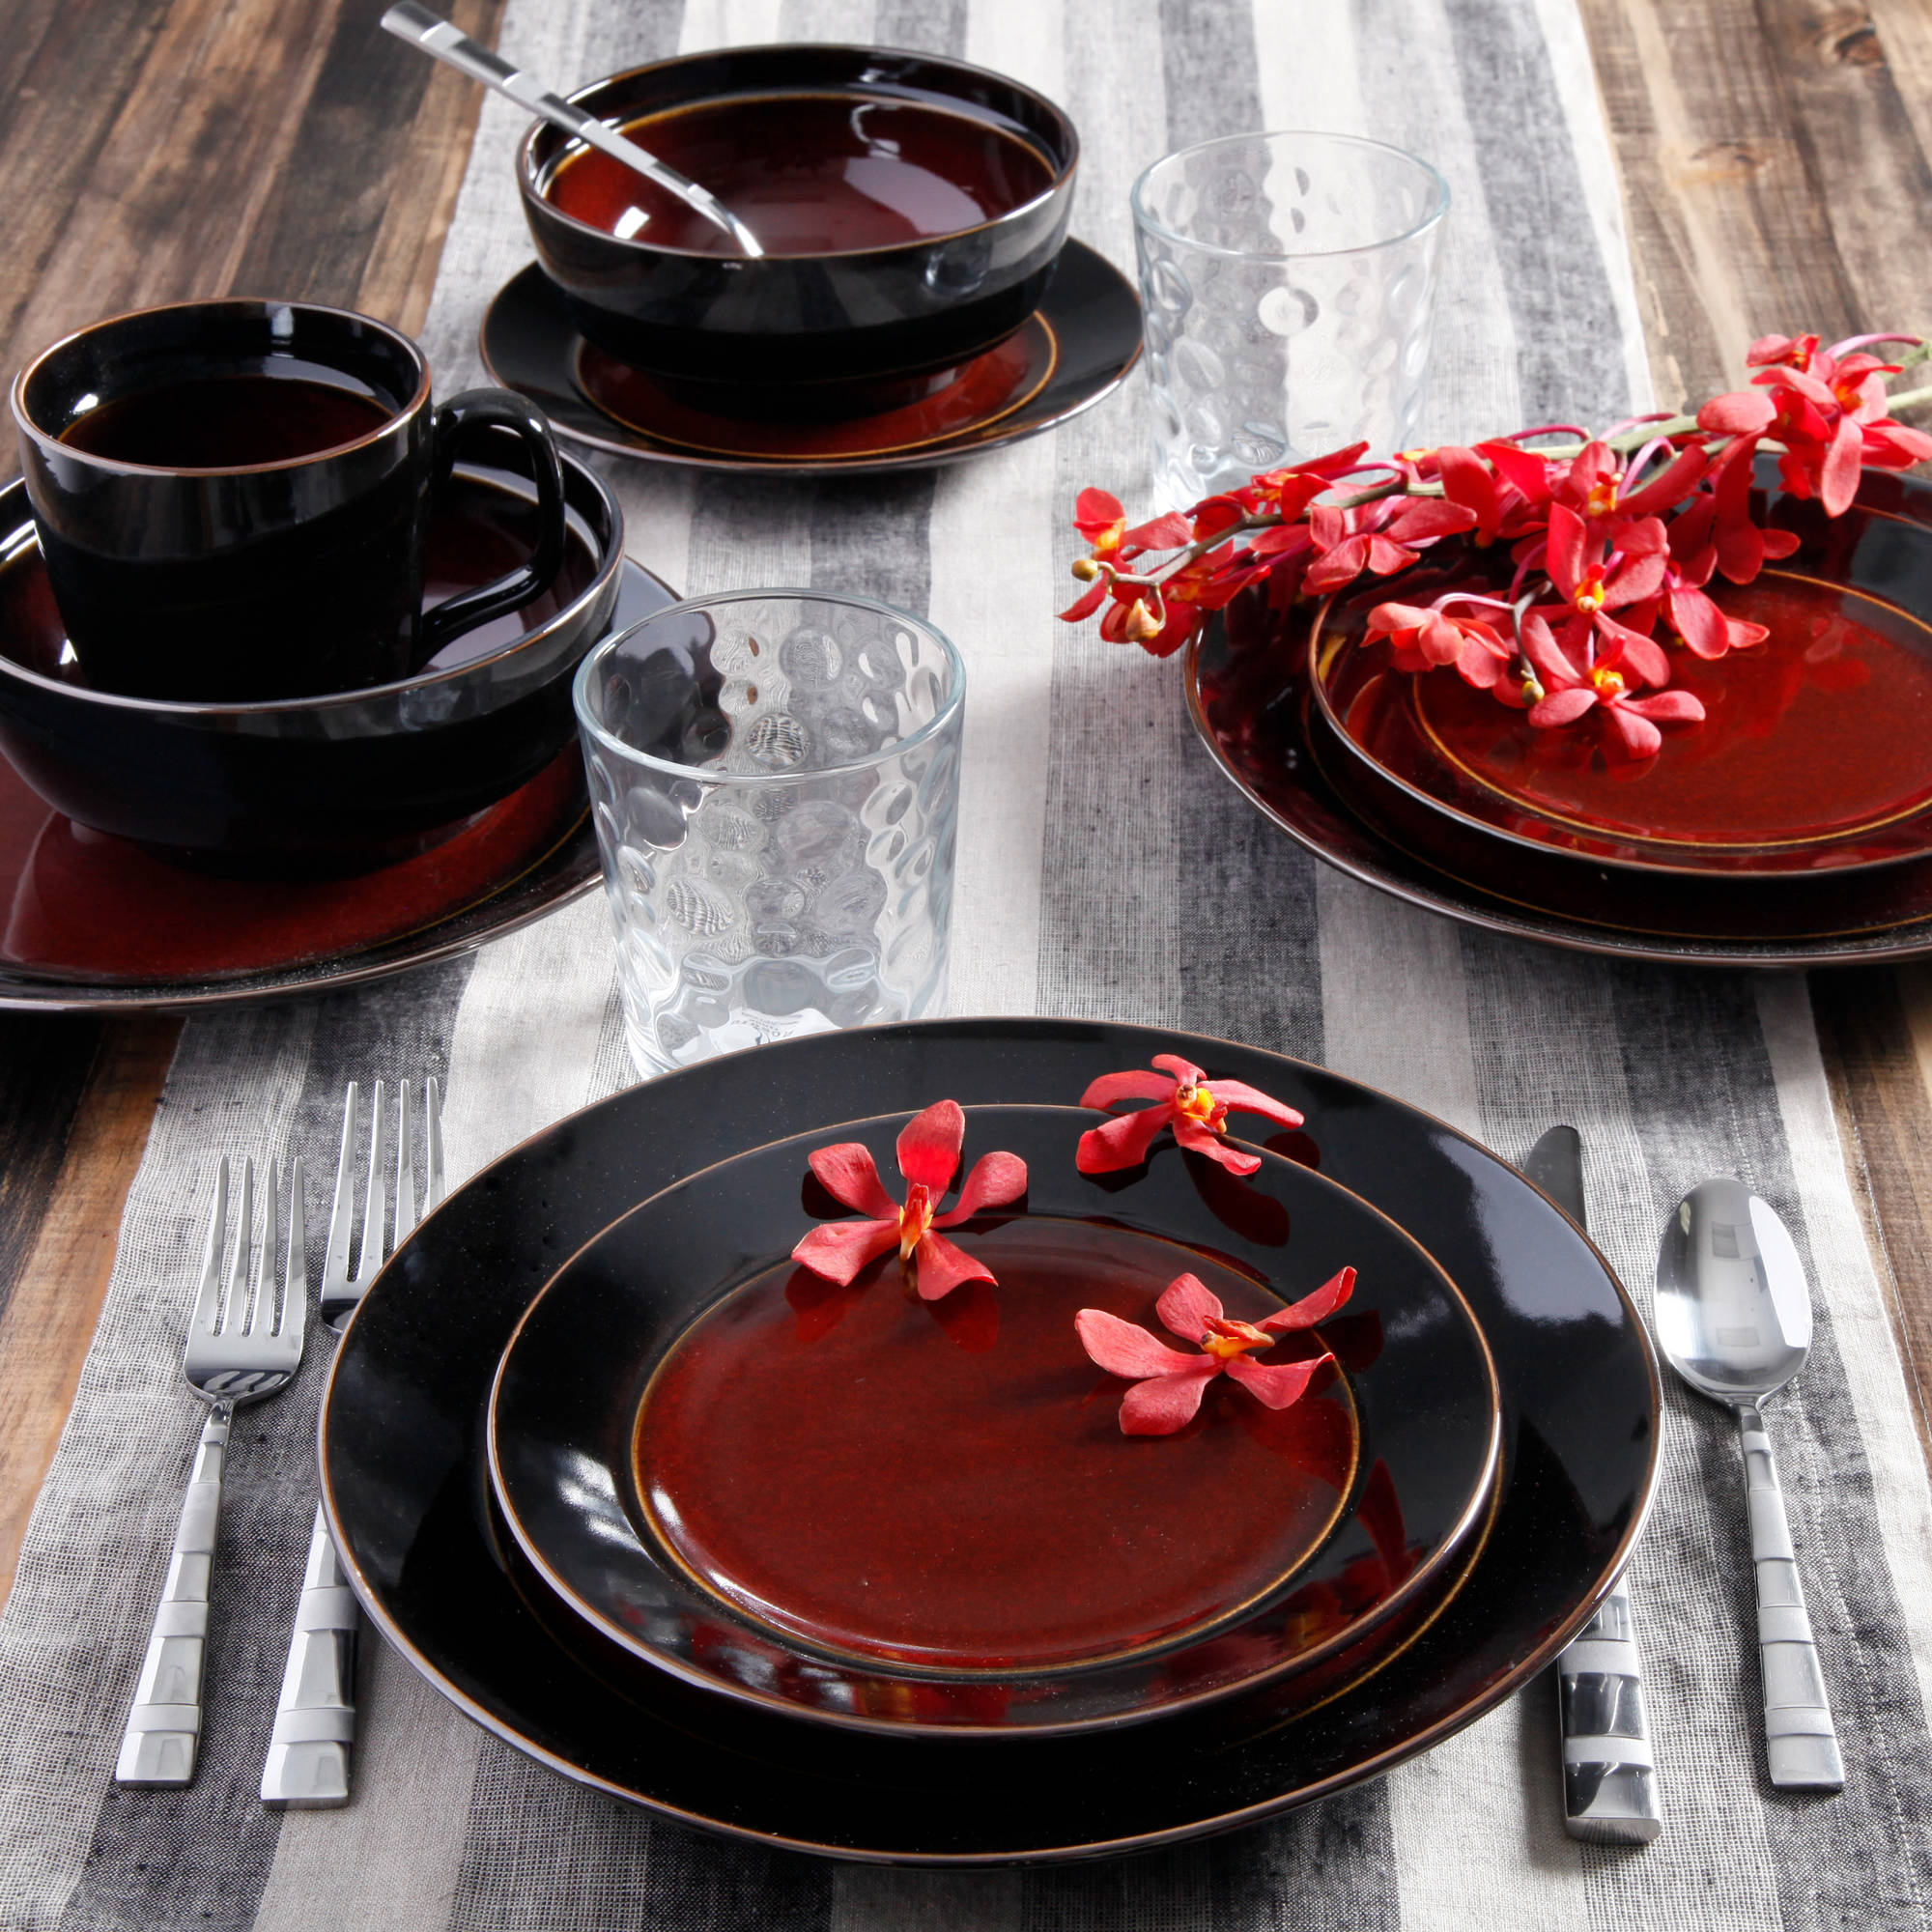 Gibson Studio Villa Mosa 16 Piece Dinnerware Set Round : gibson red and black dinnerware - pezcame.com